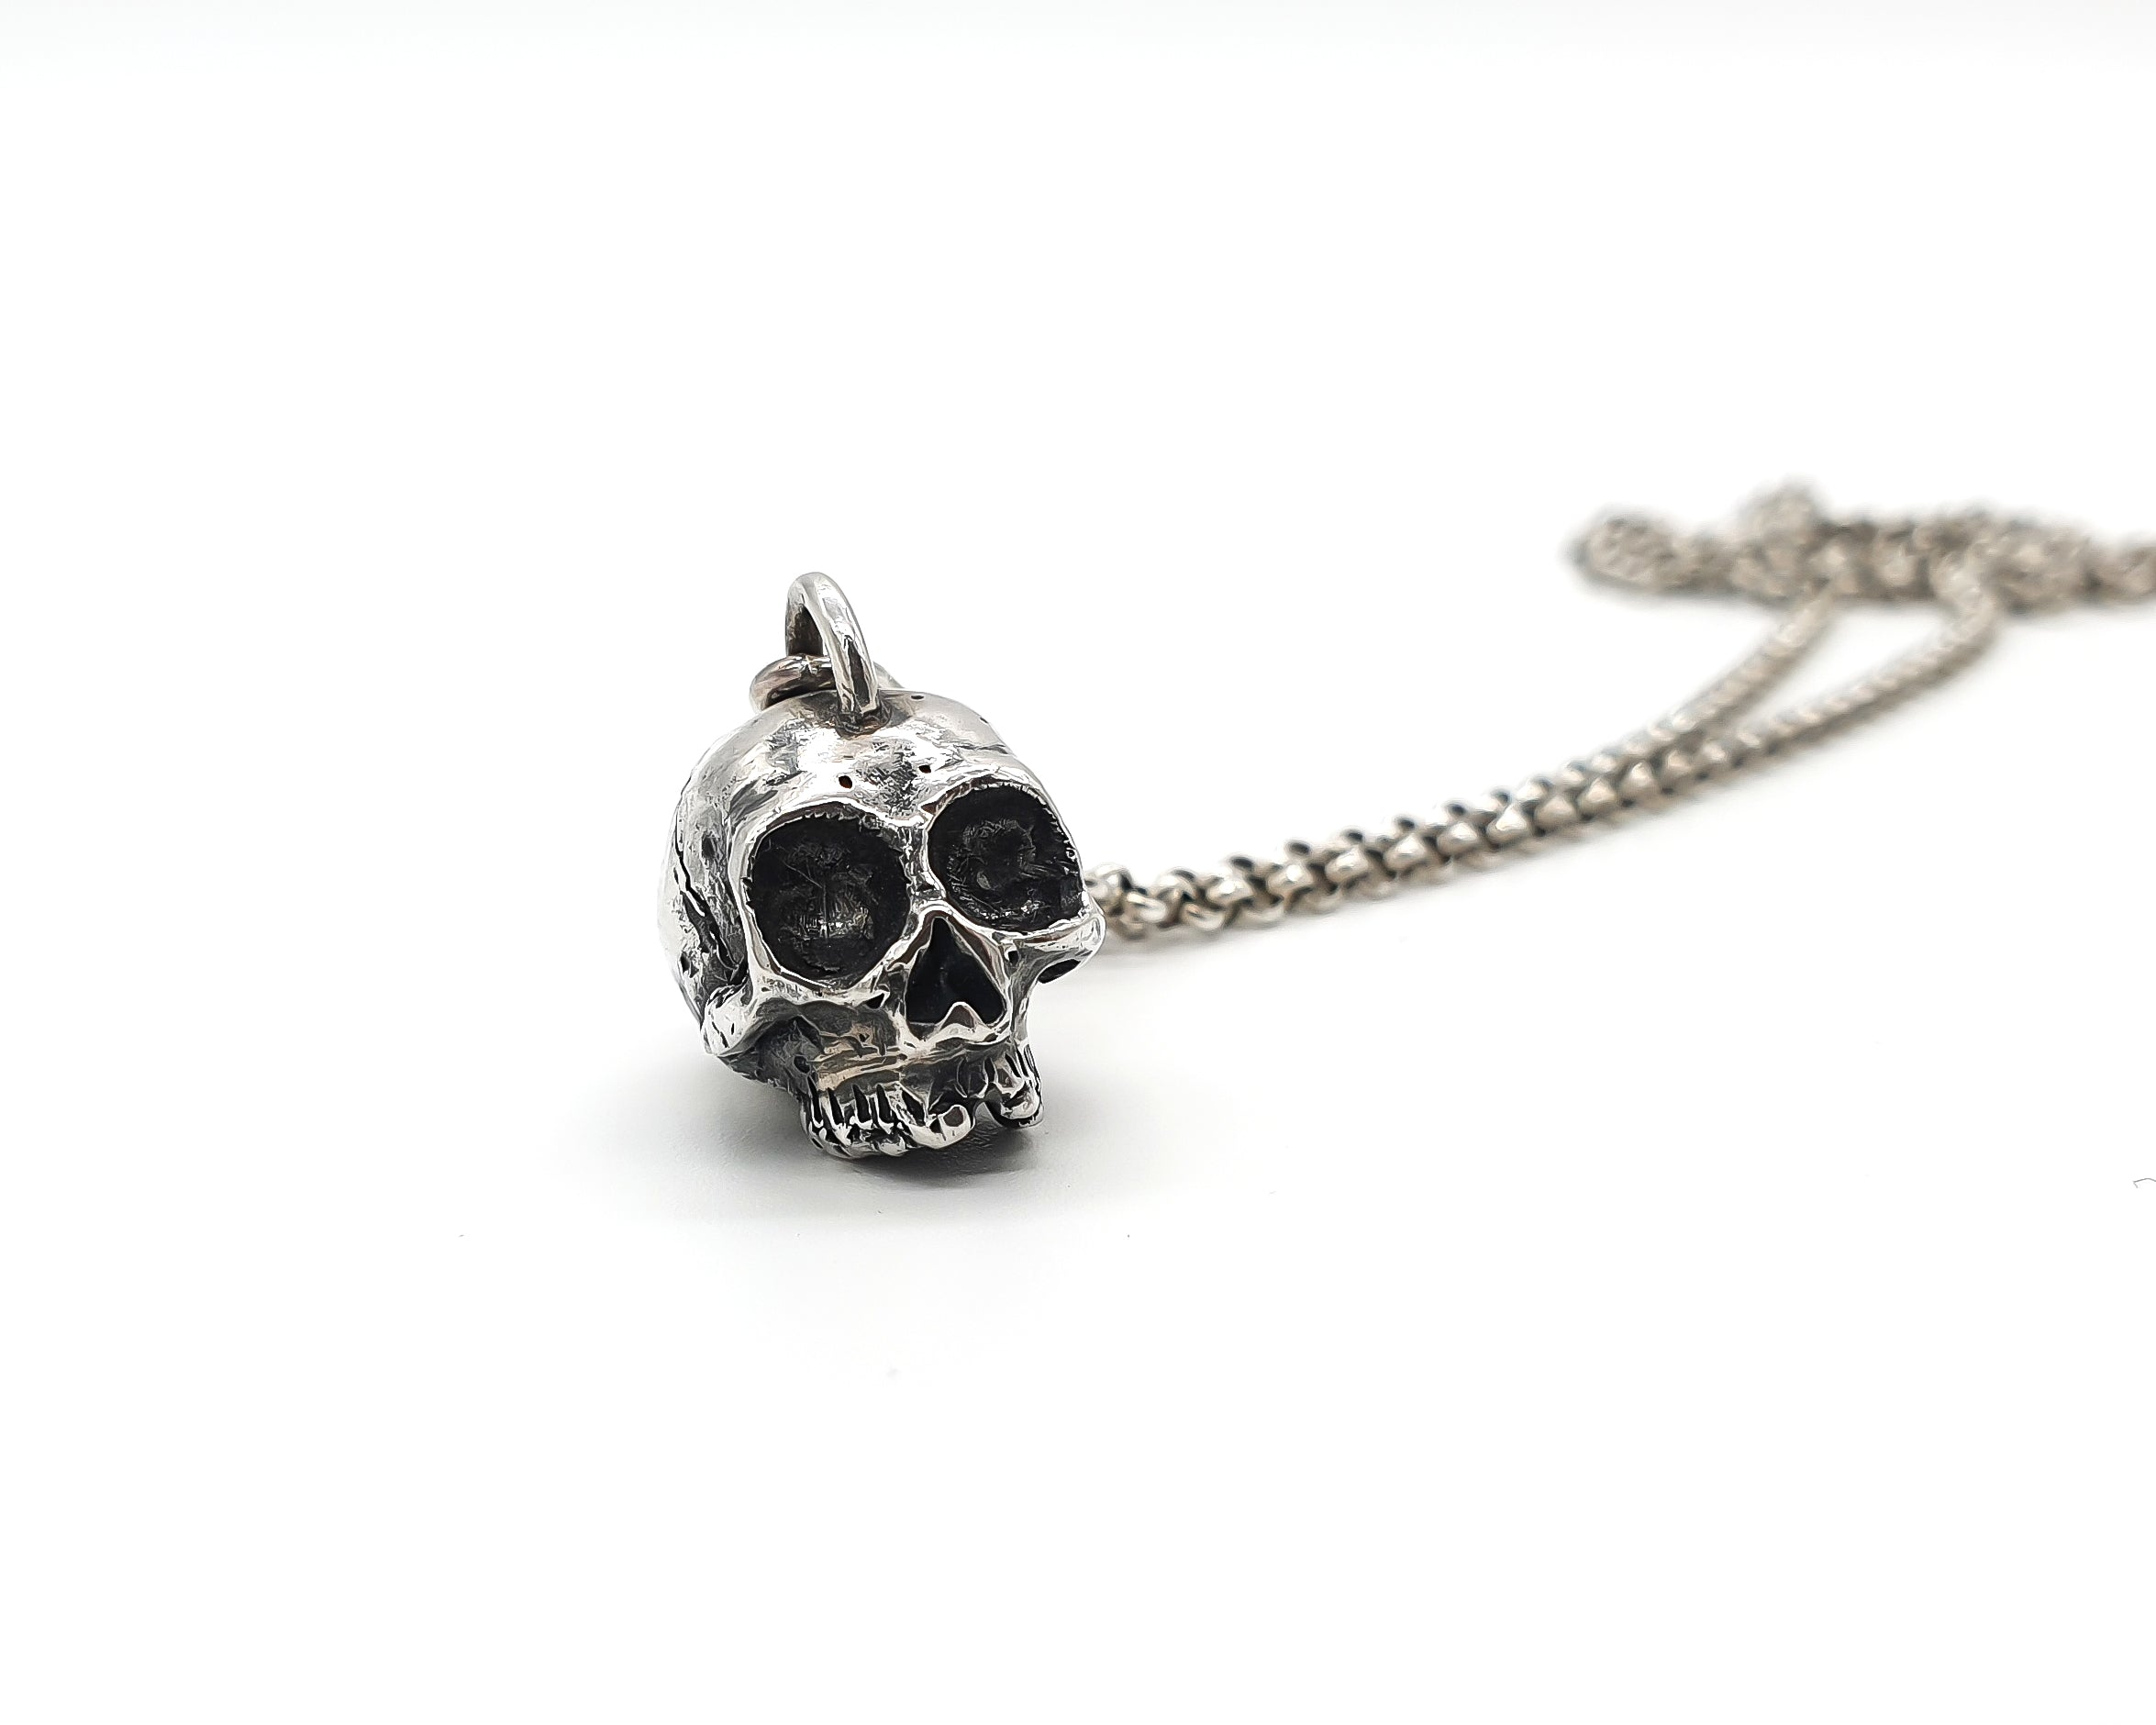 Cranium Necklace